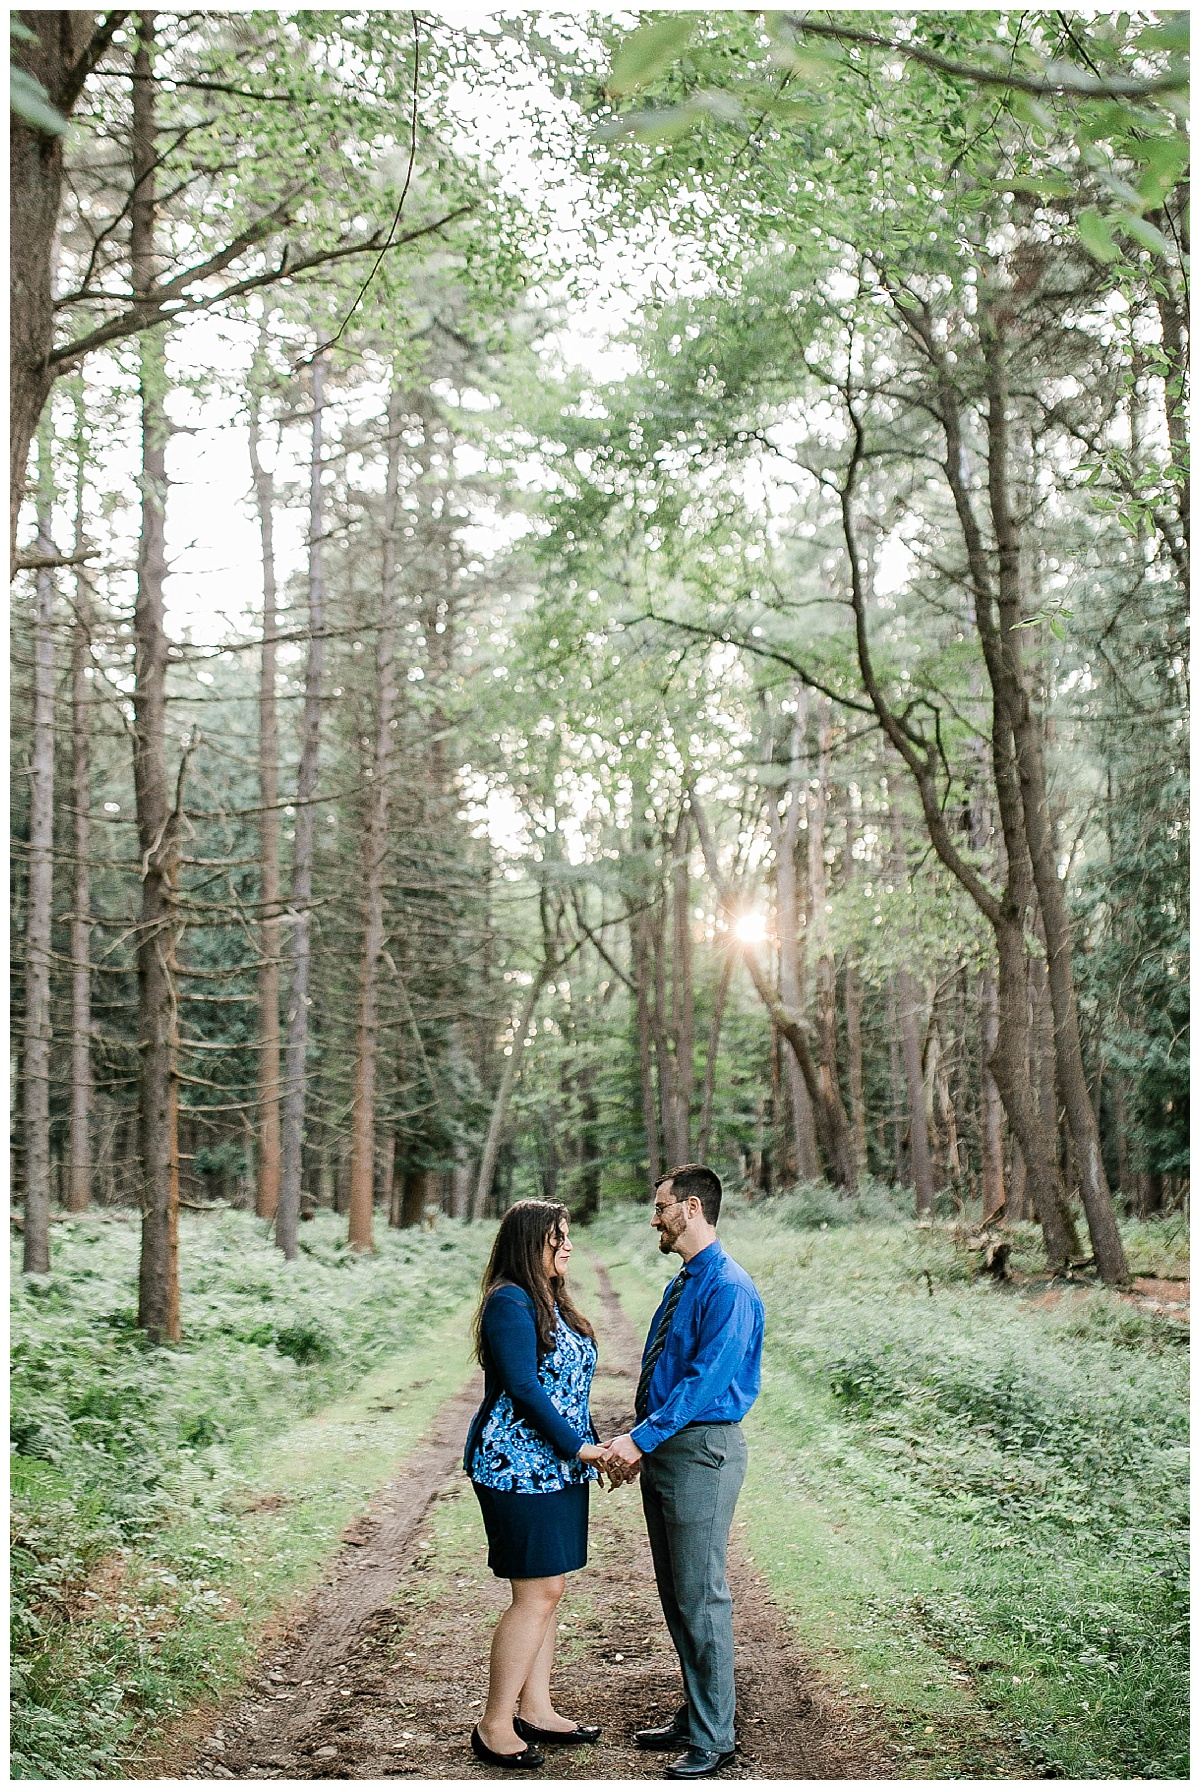 Amanda and Justin - Letchworth state Park engagement photos - Lass and Beau-4094.jpg